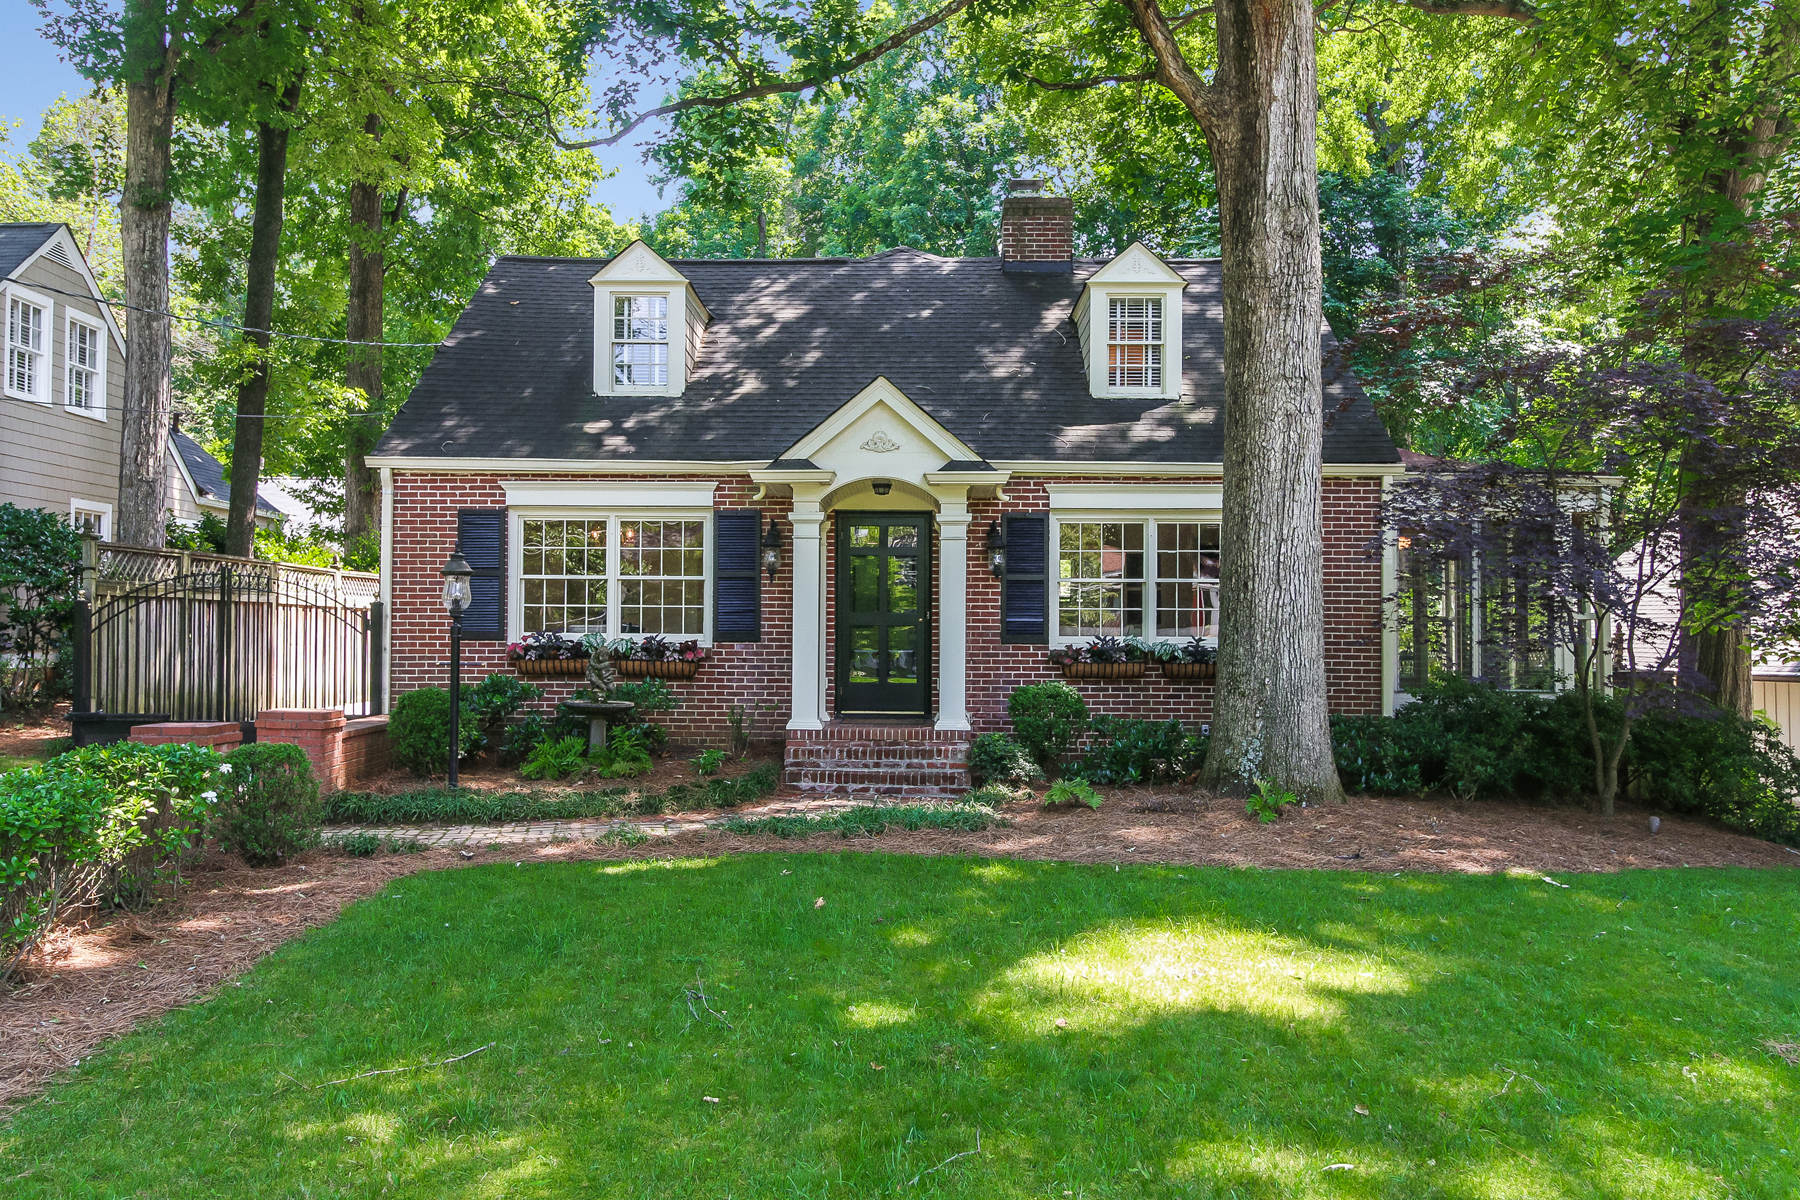 Single Family Home for Sale at Beautiful Brick Home In The Heart Of Buckhead 277 Alberta Drive NE Atlanta, Georgia 30305 United States